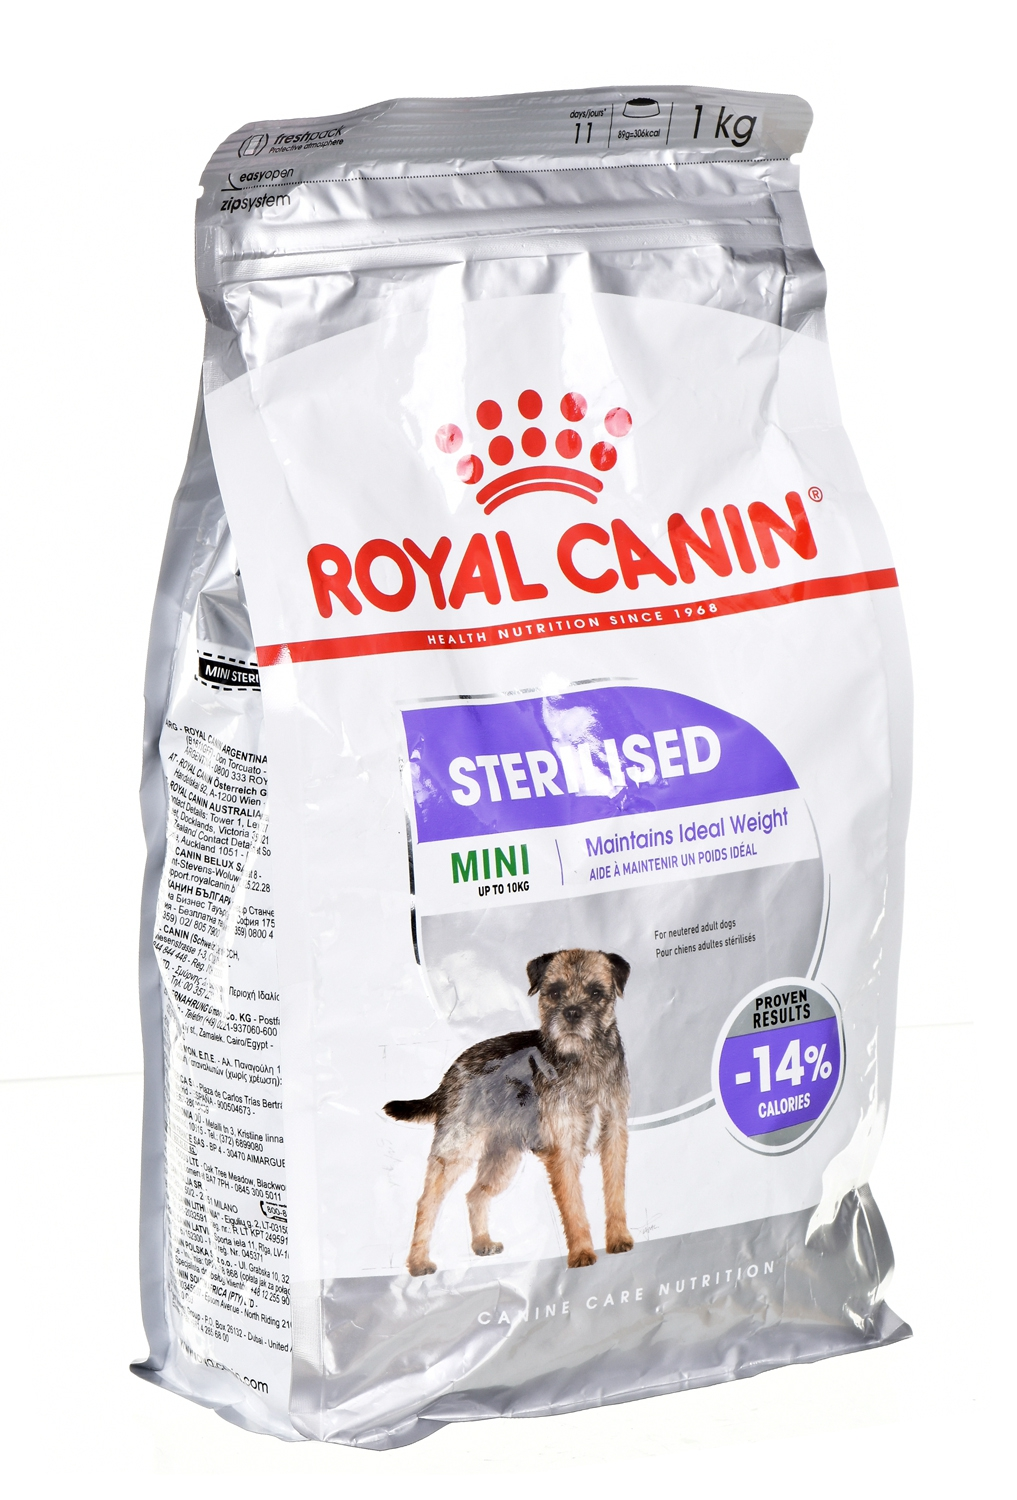 #ROYAL CANIN Mini Sterilised 1kg